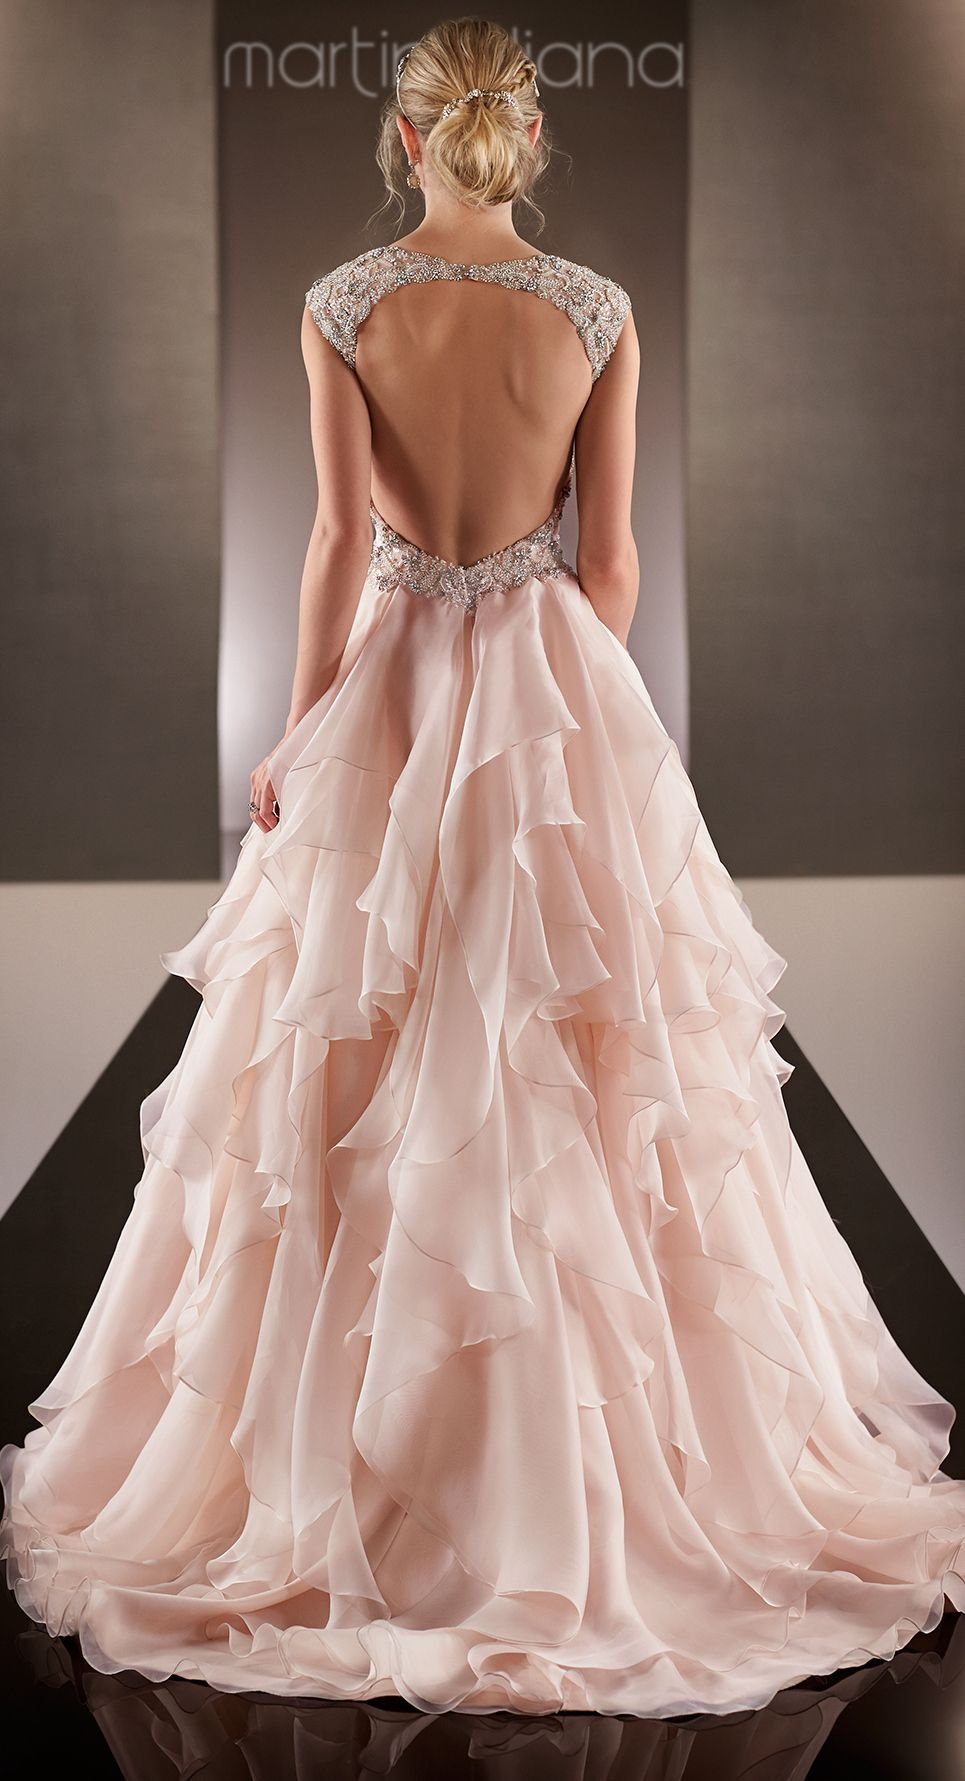 Backless wedding dress with illusion cap sleeves gowns